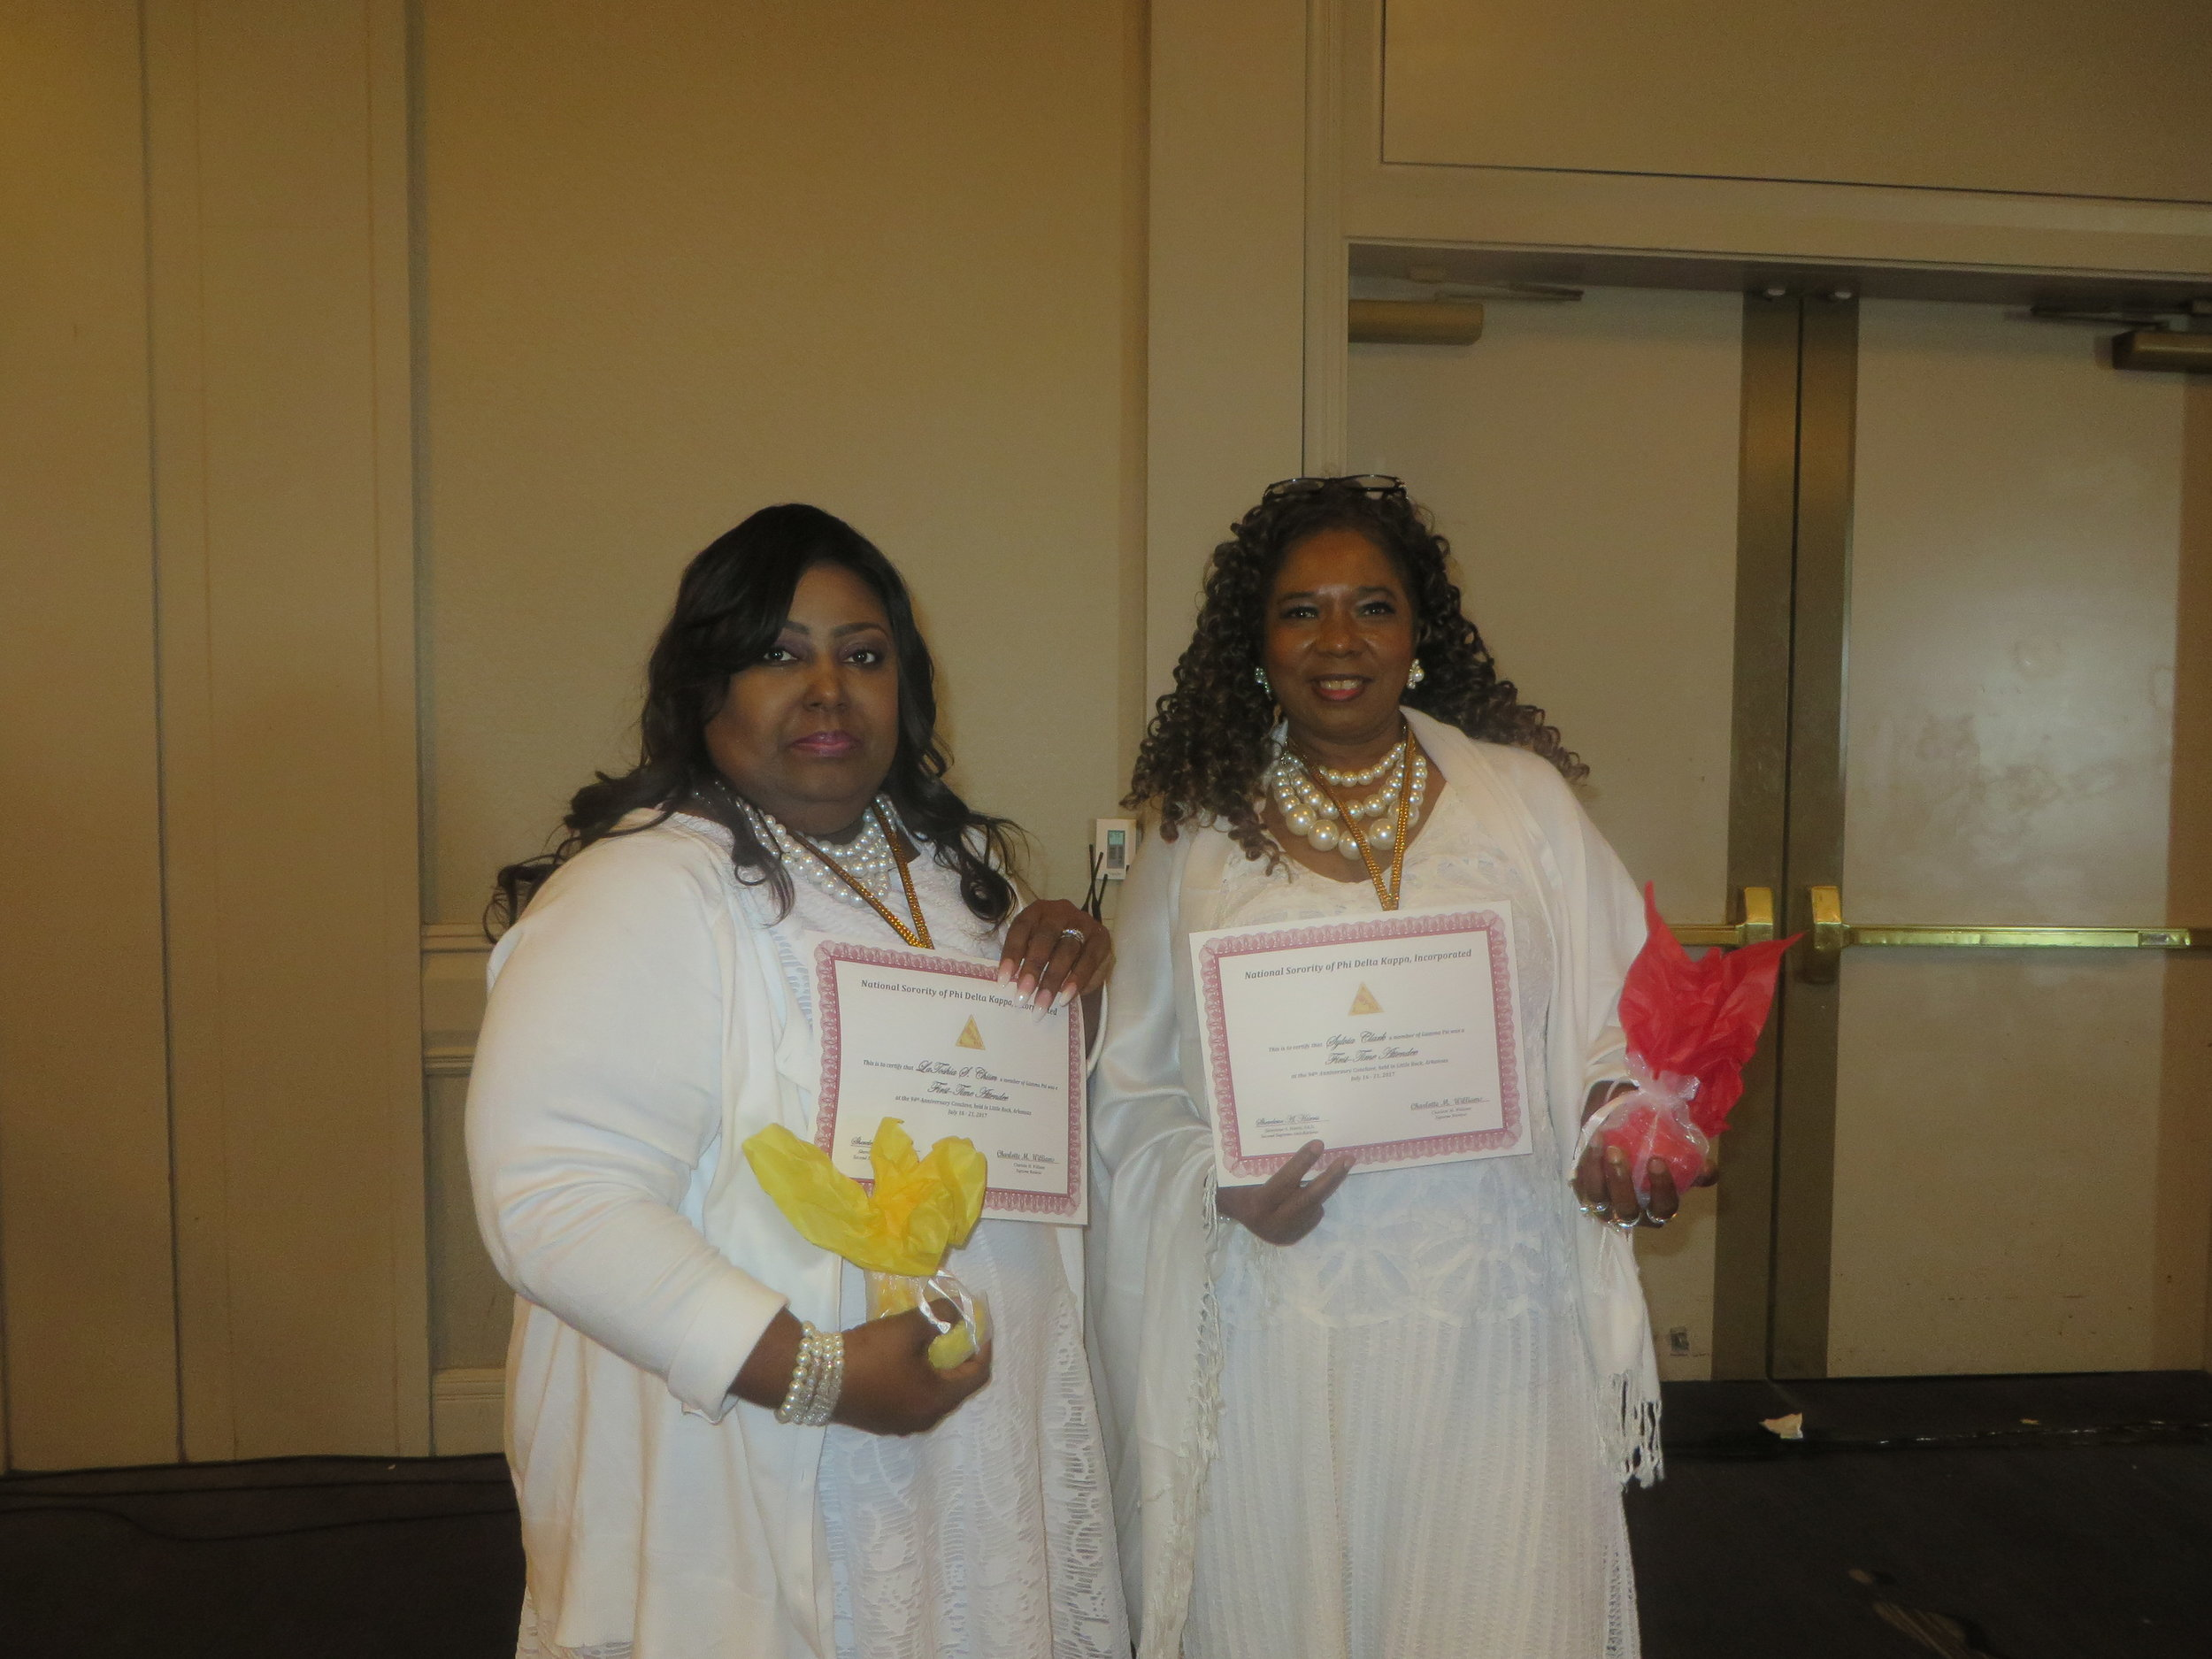 LaToshia Chism and Sylvia Clark, First Time Attendees